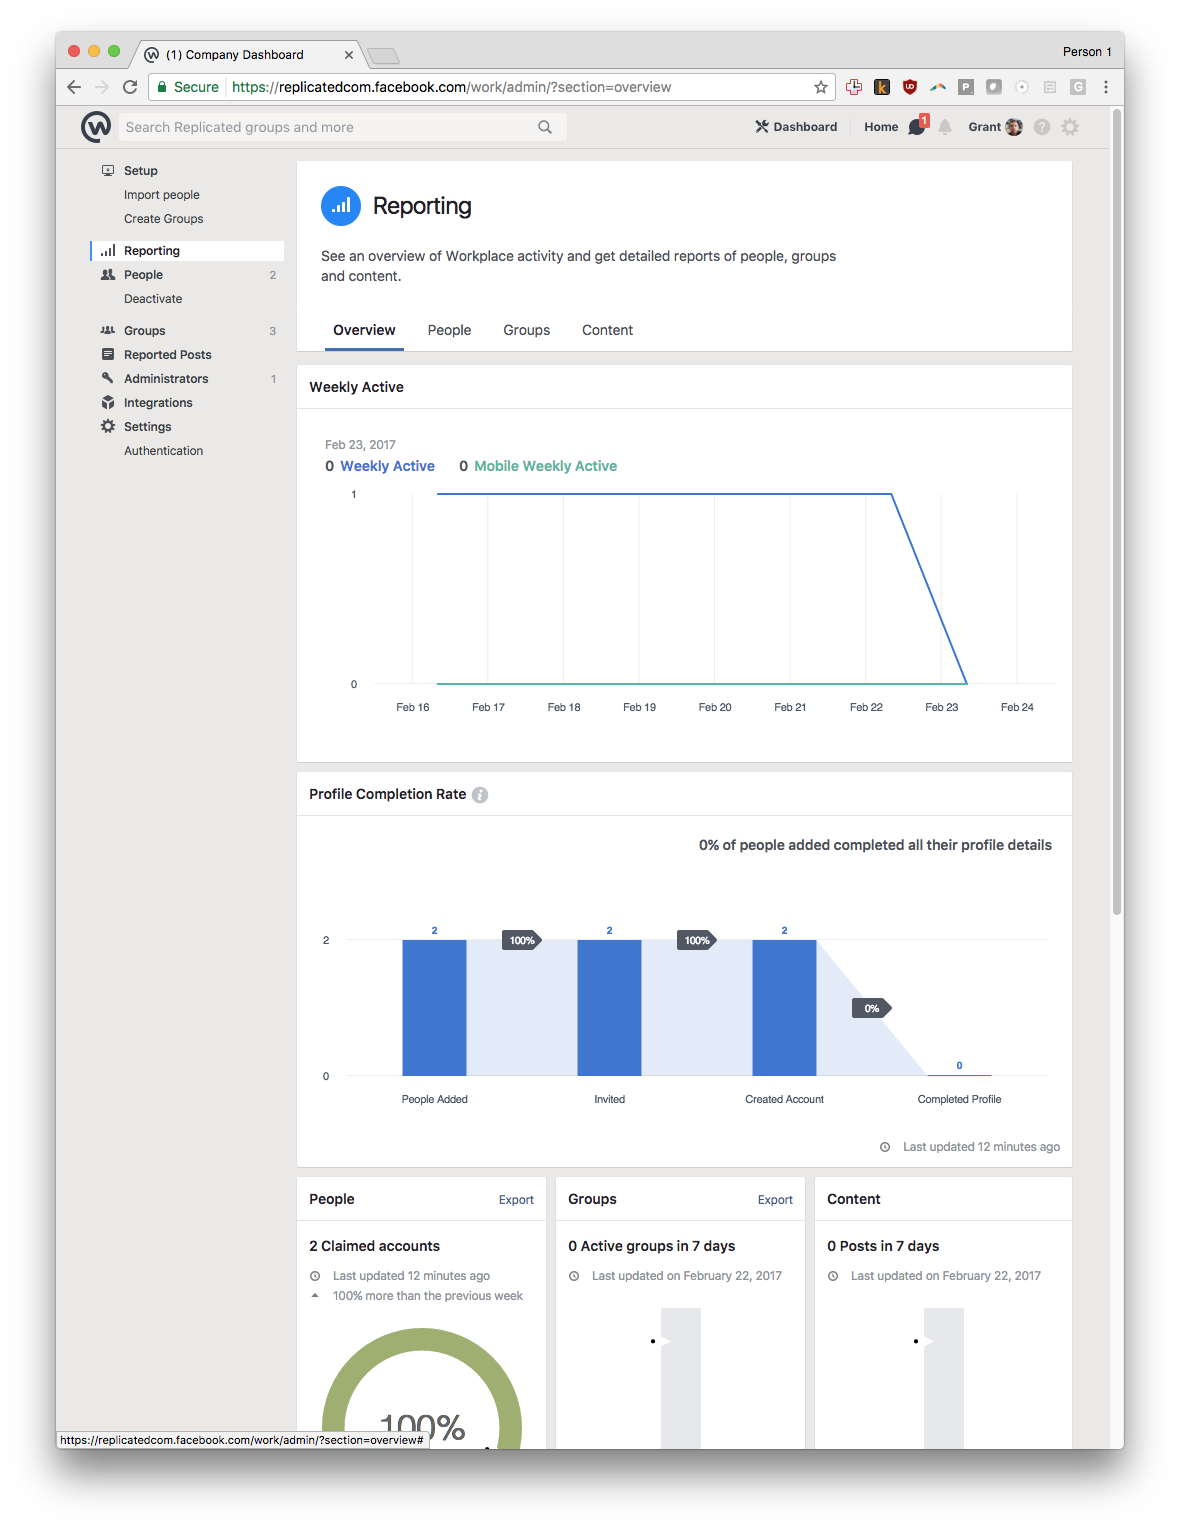 FB Workplace Reporting - Enterprise Ready Feature Breakdown